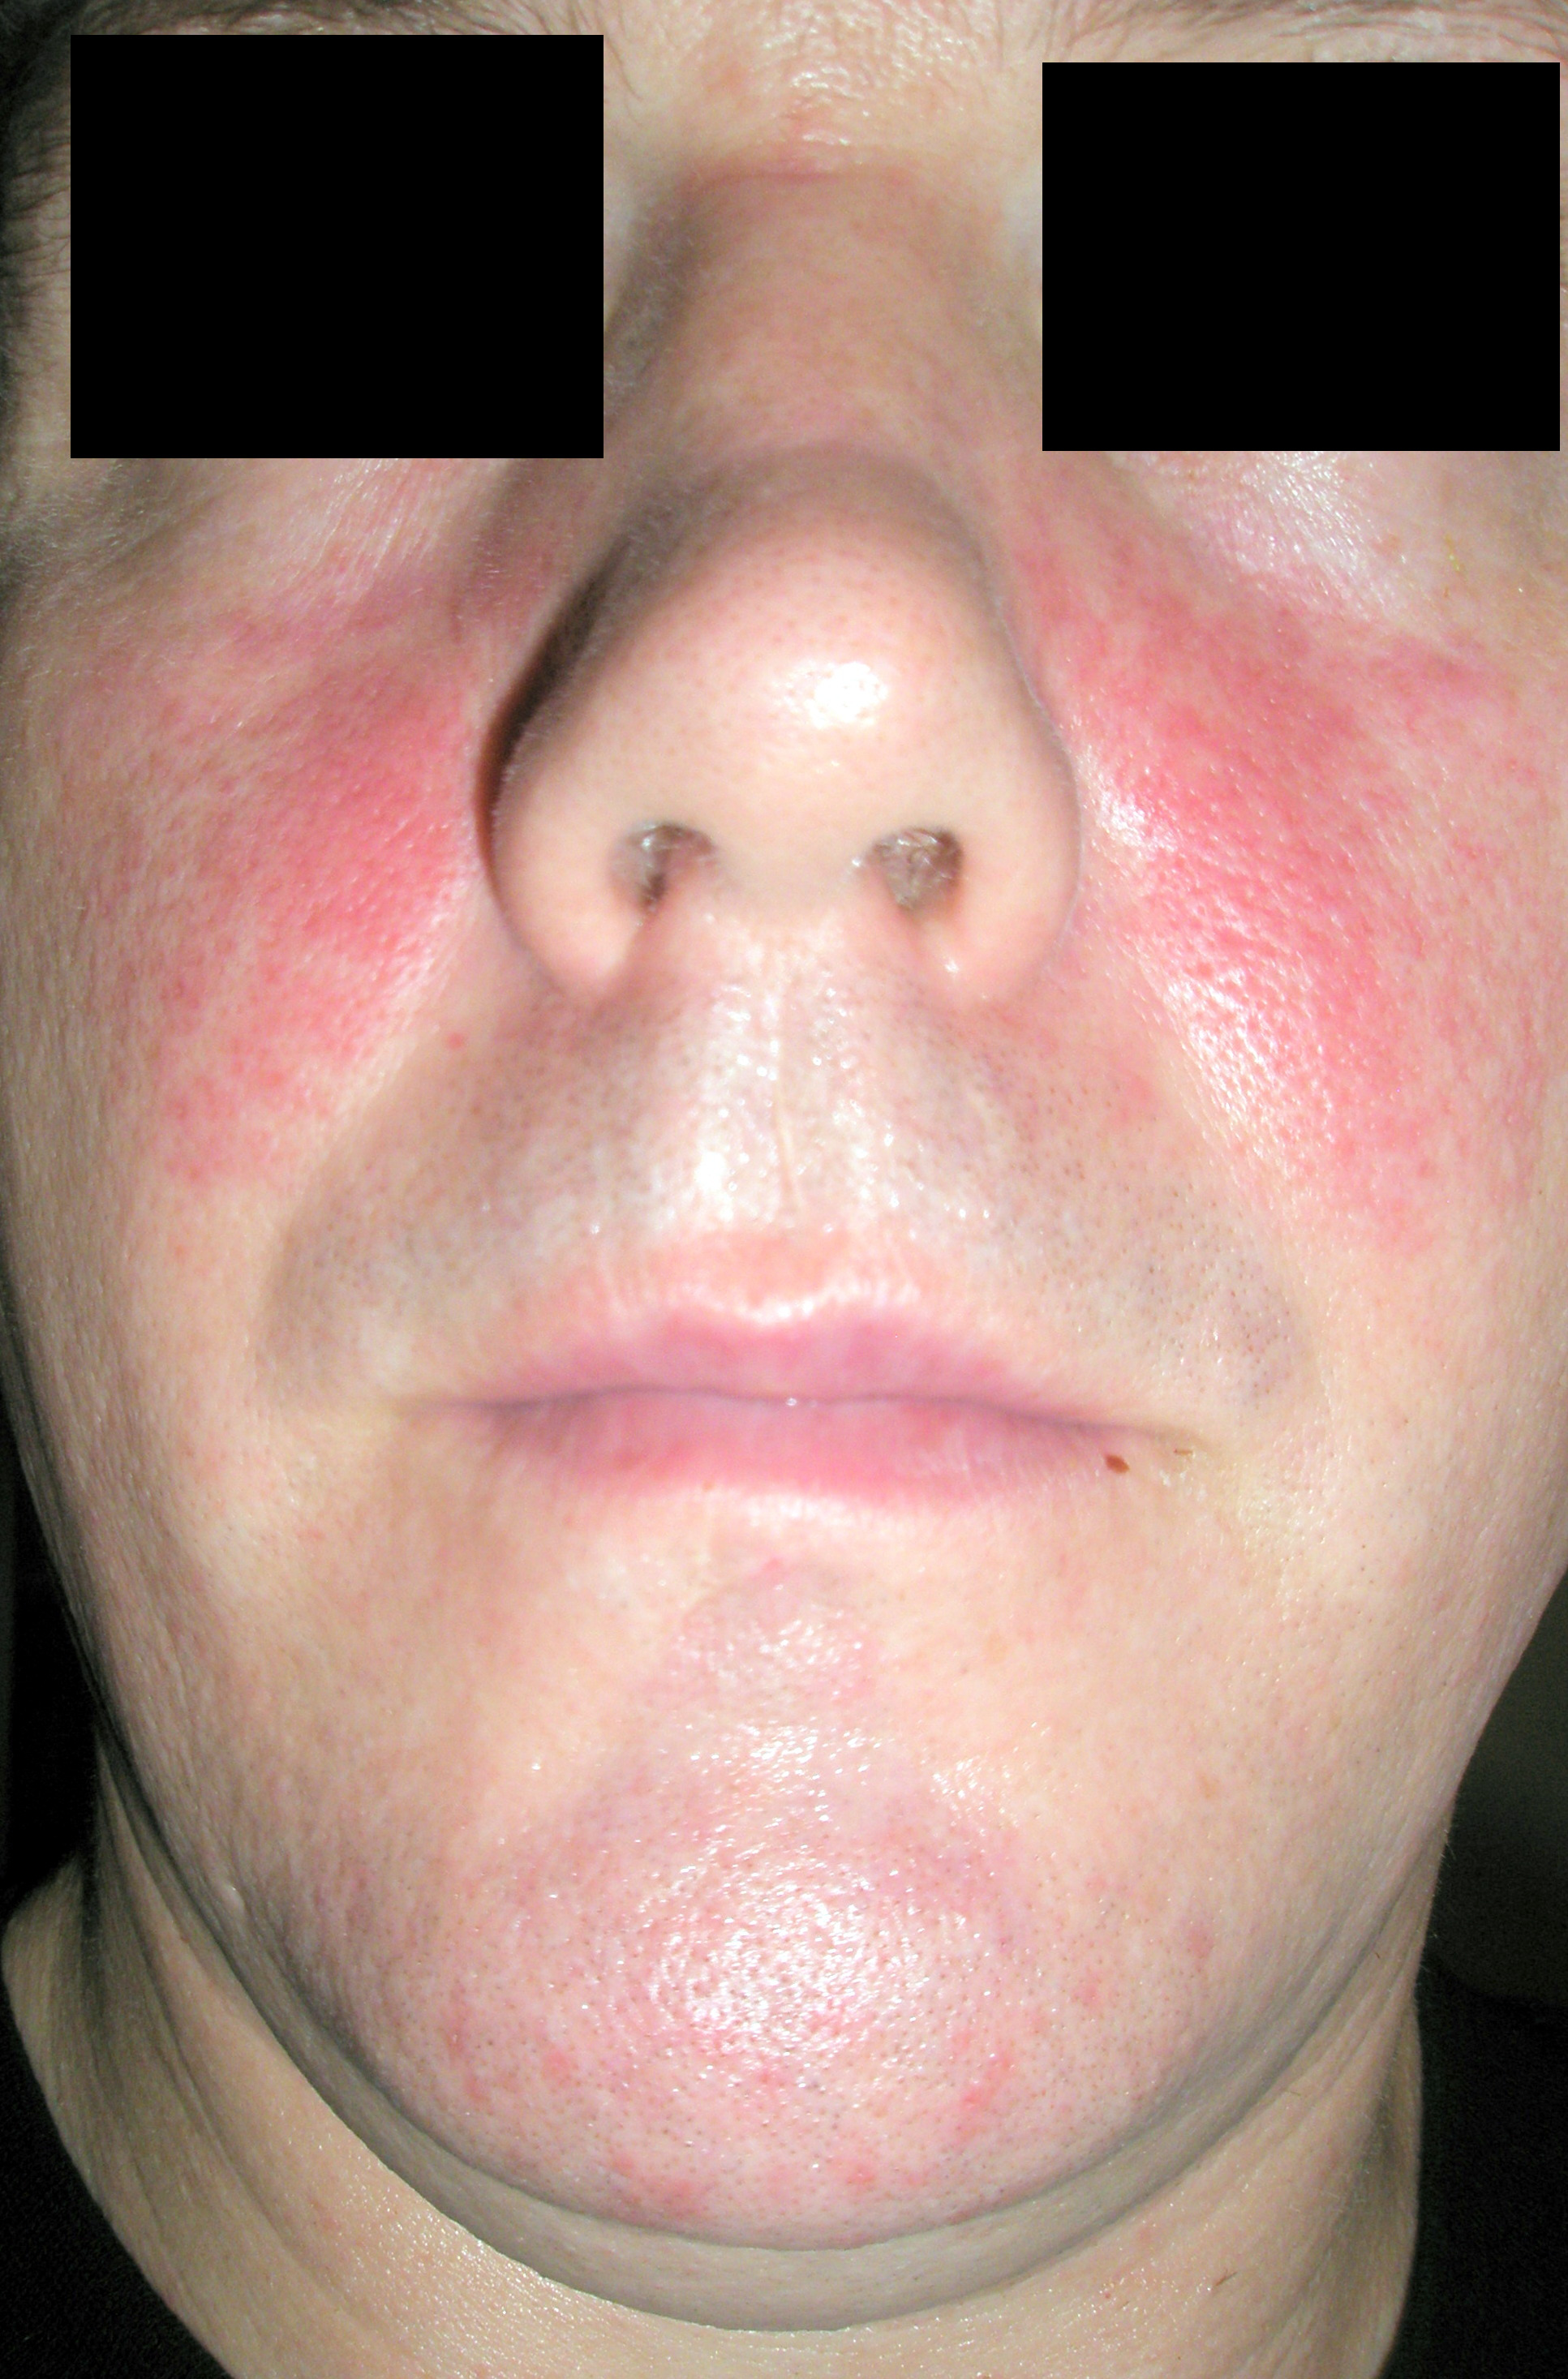 Red cheeks are often caused by rosacea